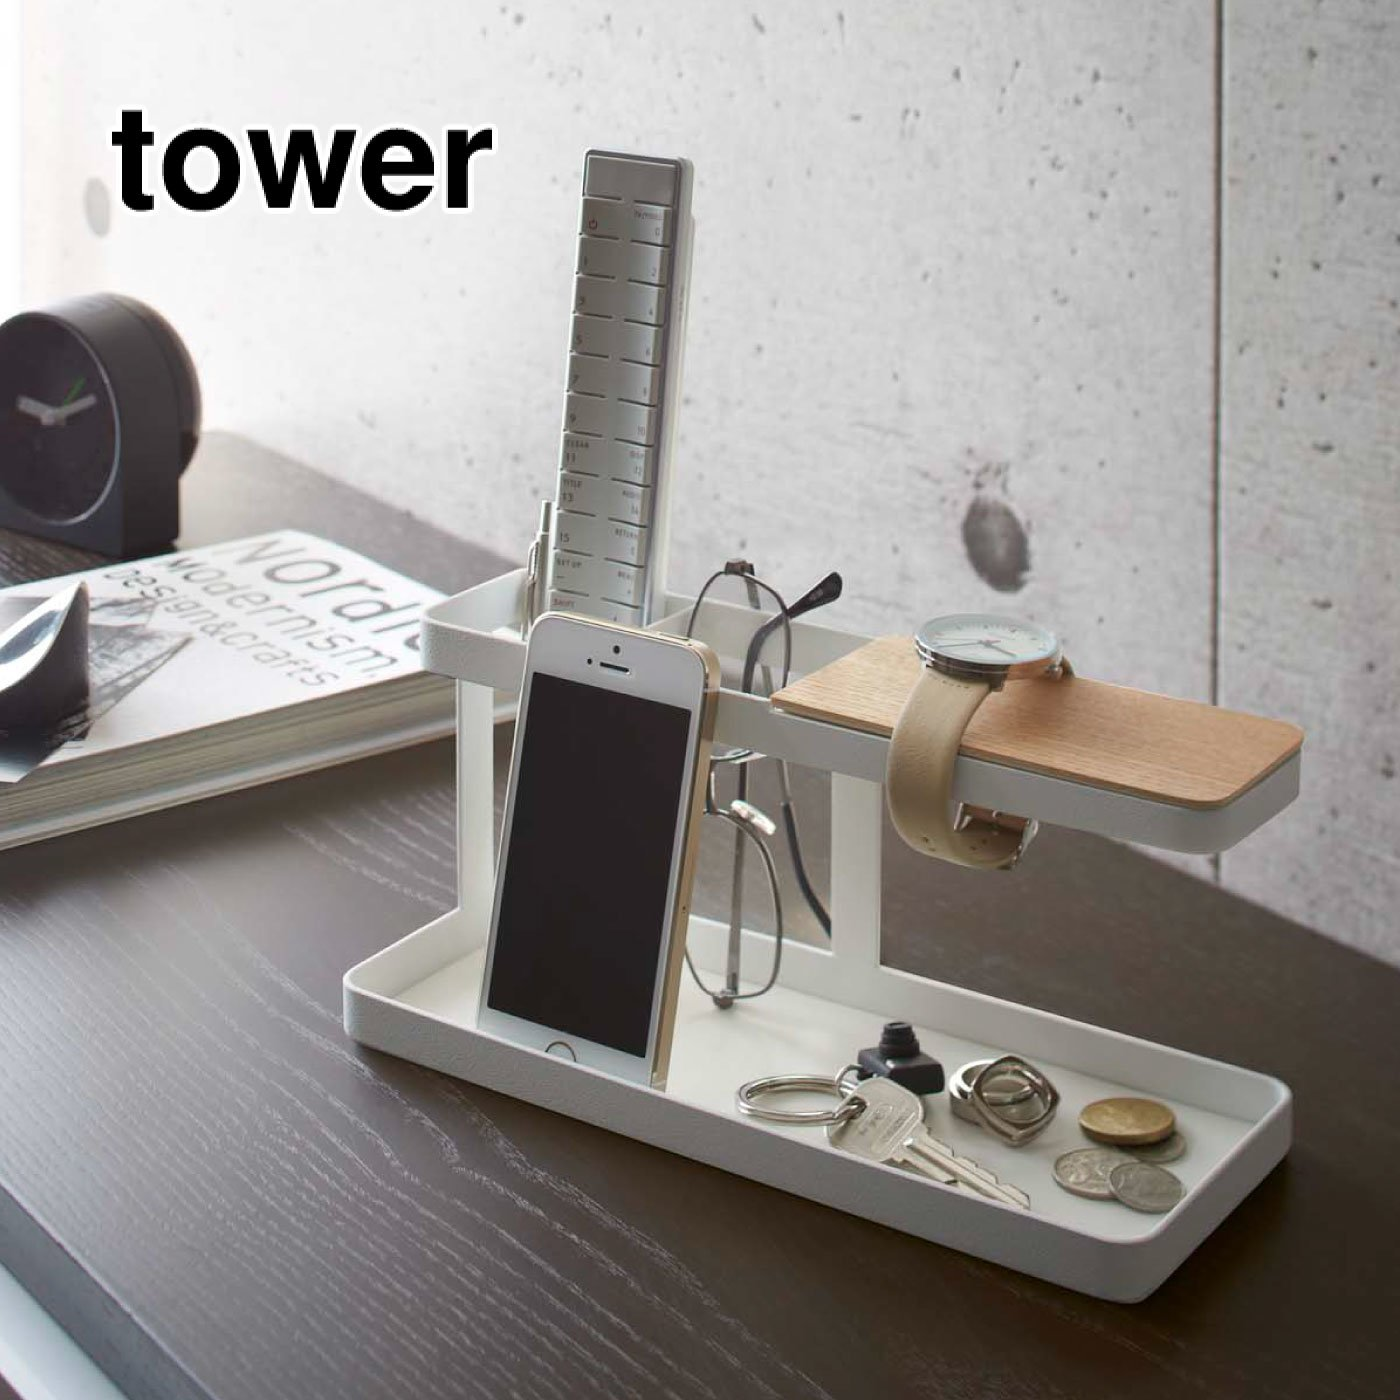 tower デスクバー